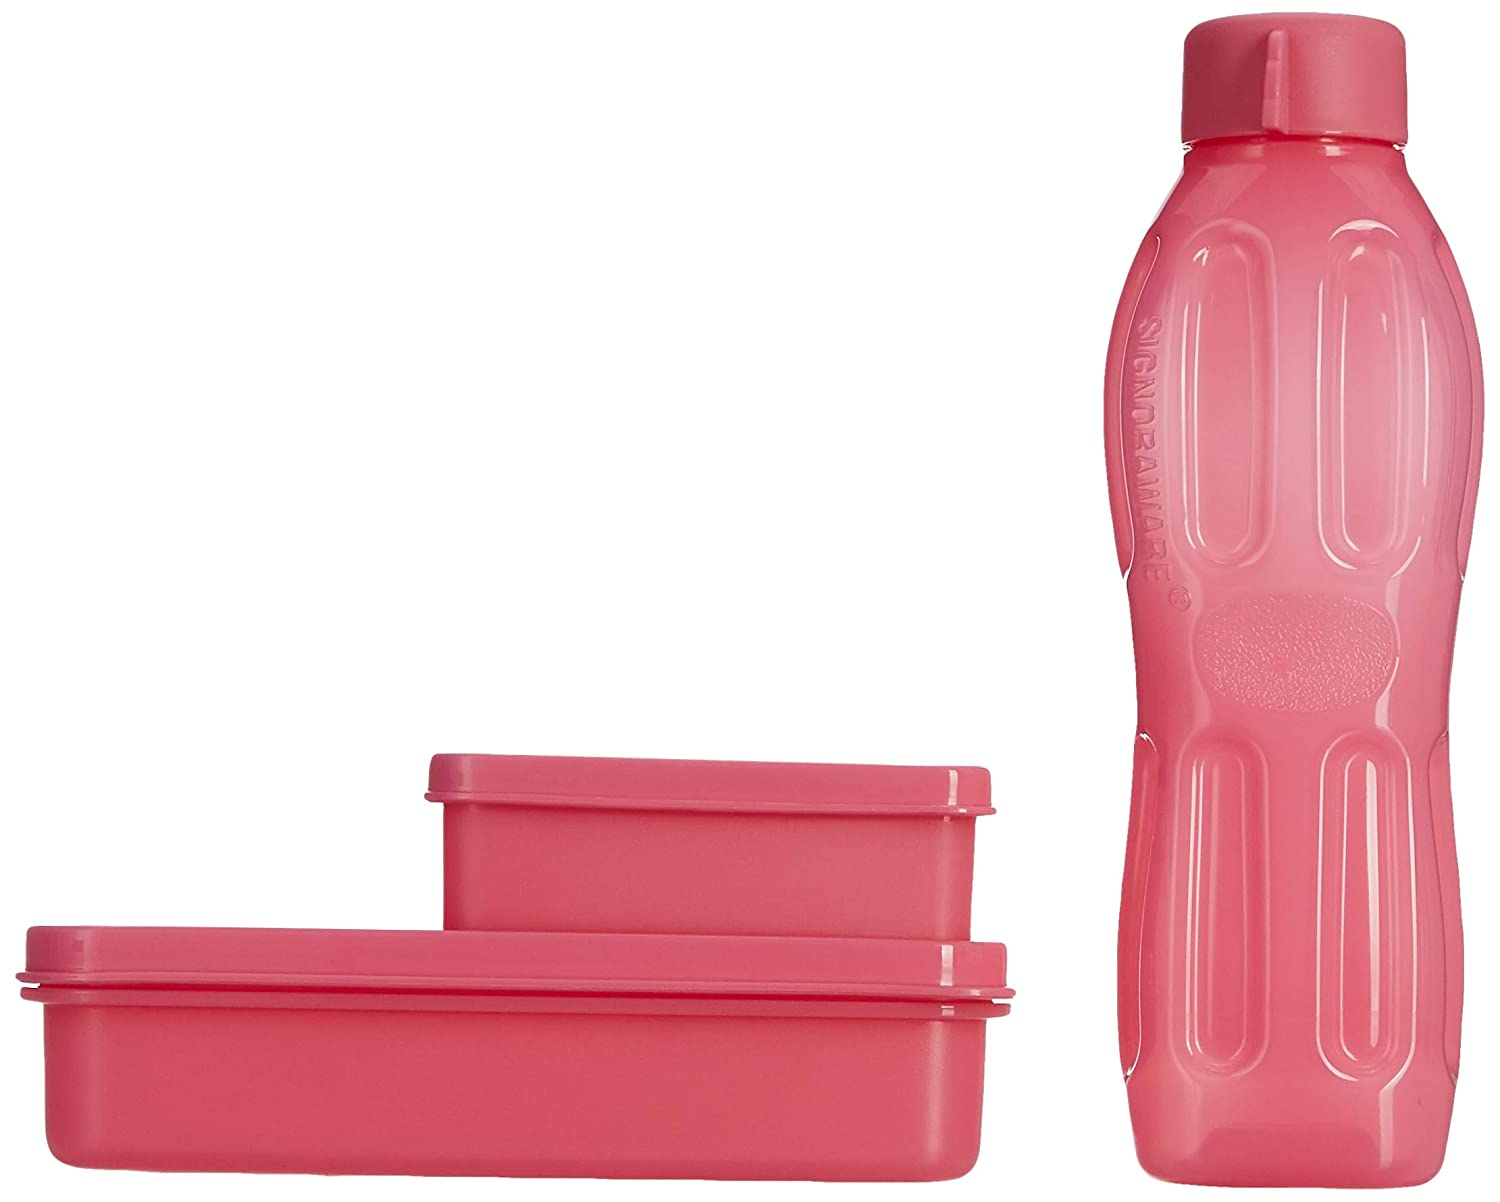 Signoraware 573 Little Champ Container, 3 Pieces (1200ml)